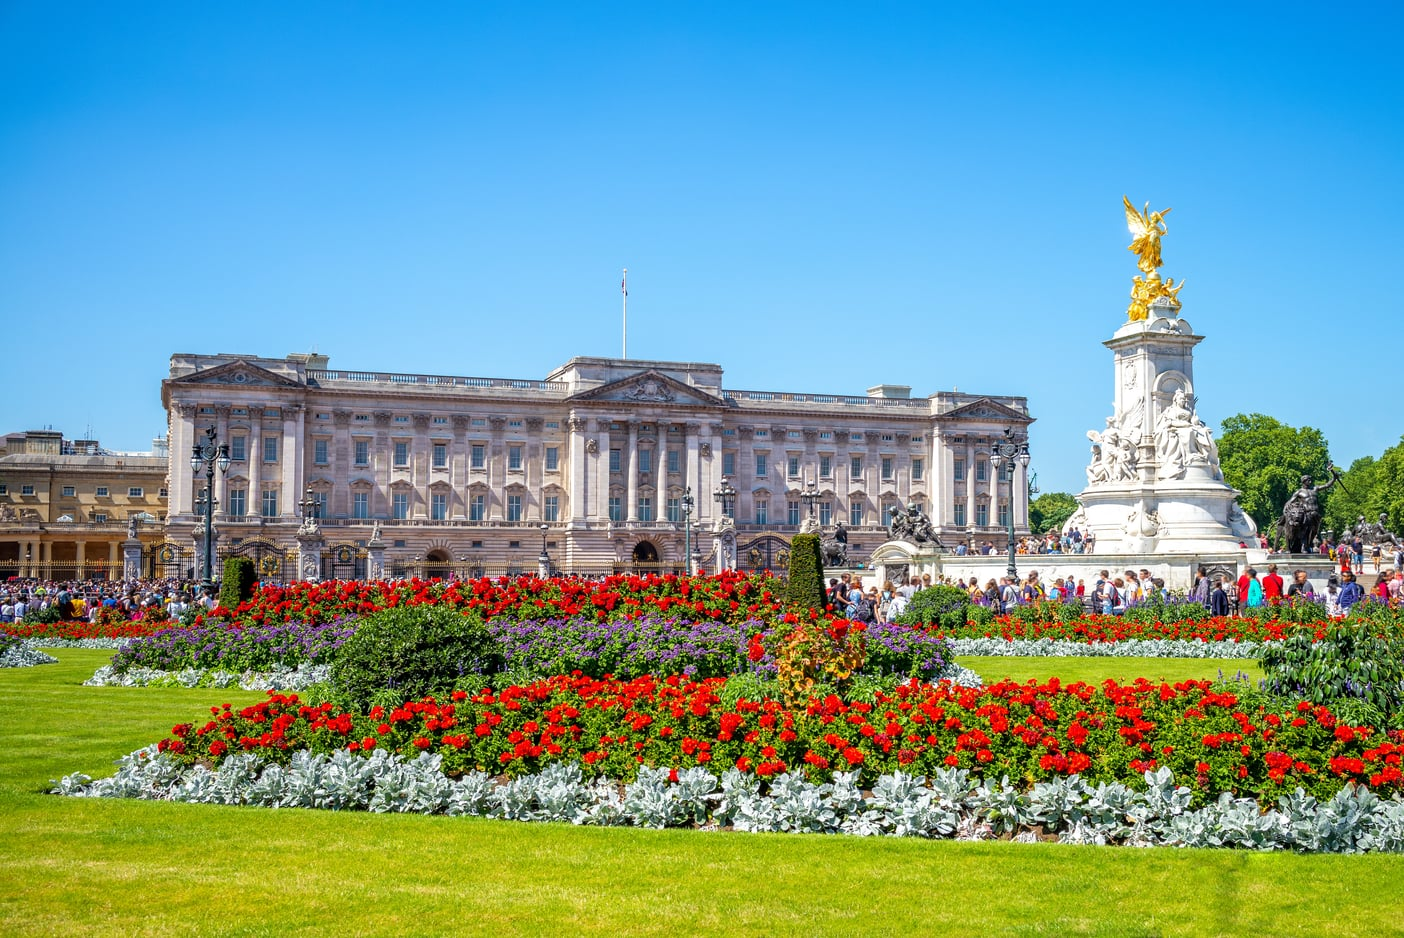 When is the best time to visit London?